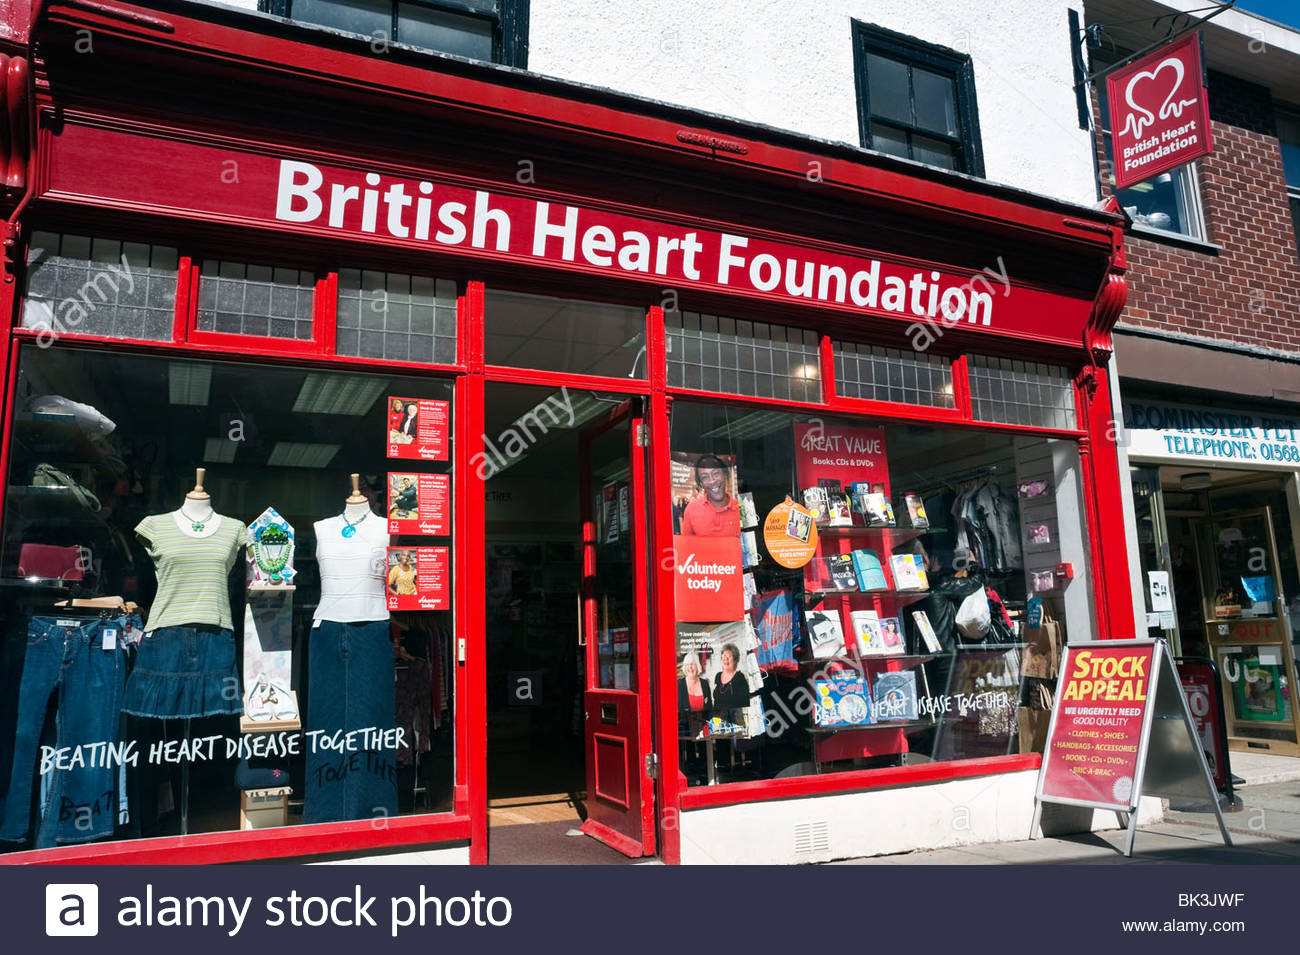 British Heart Foundation charity shop in Leominster, Herefordshire, UK. - Stock Image